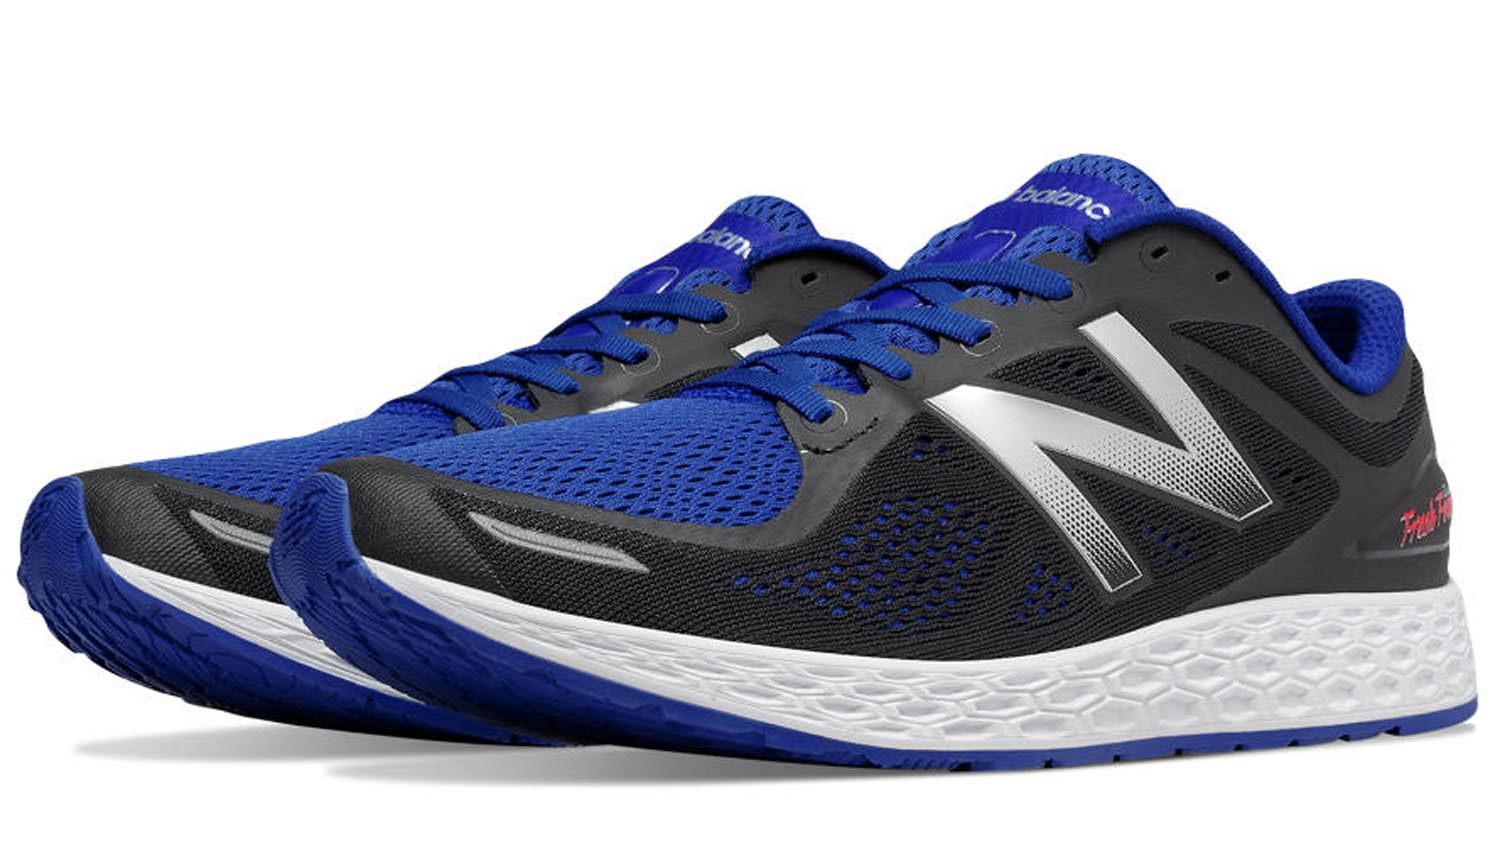 Best Shock Absorbing Shoes